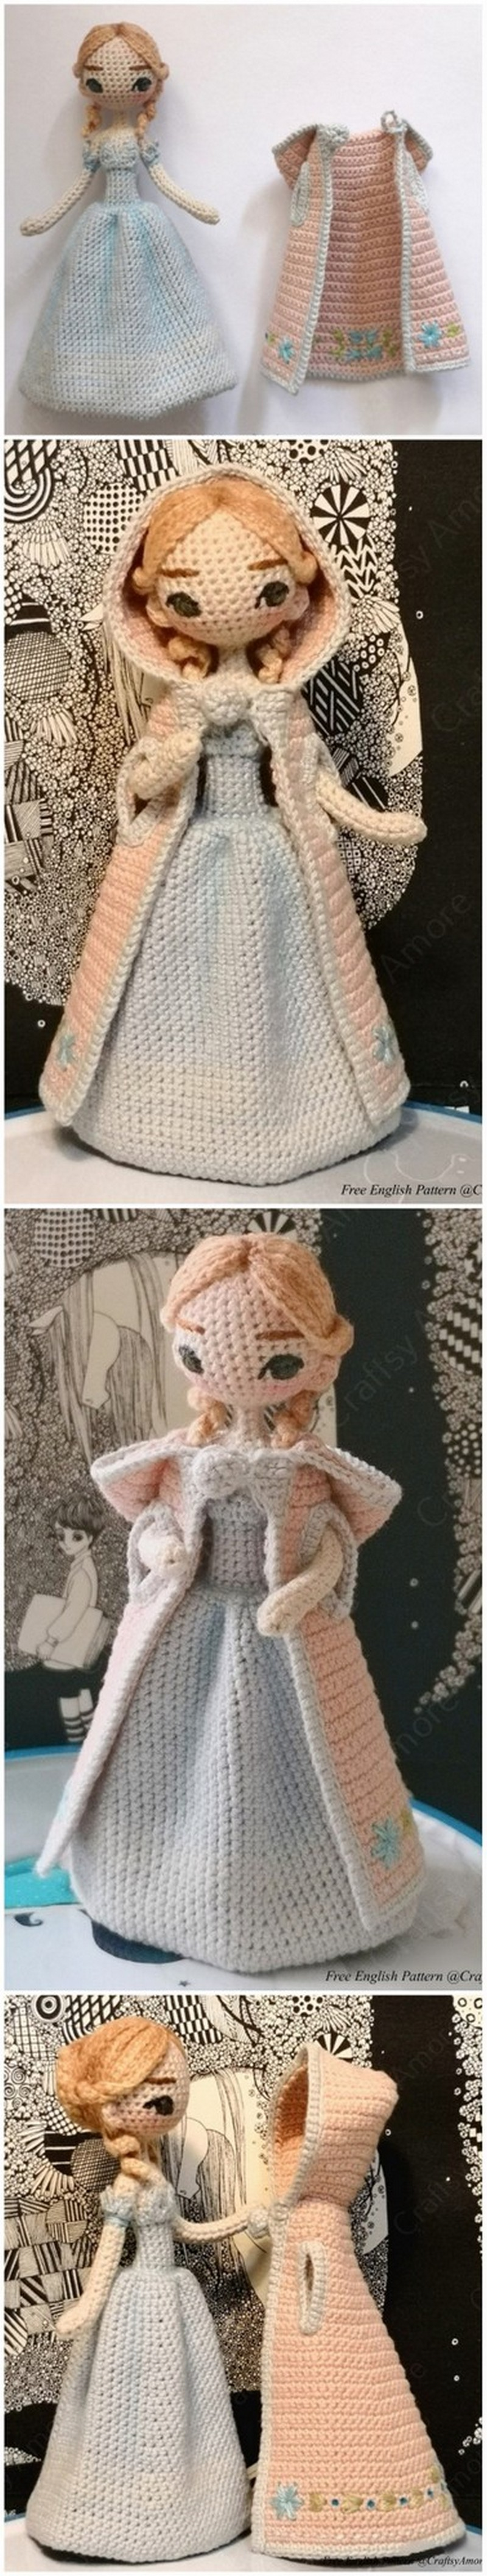 Crochet Amigurumi Doll Pattern (17)